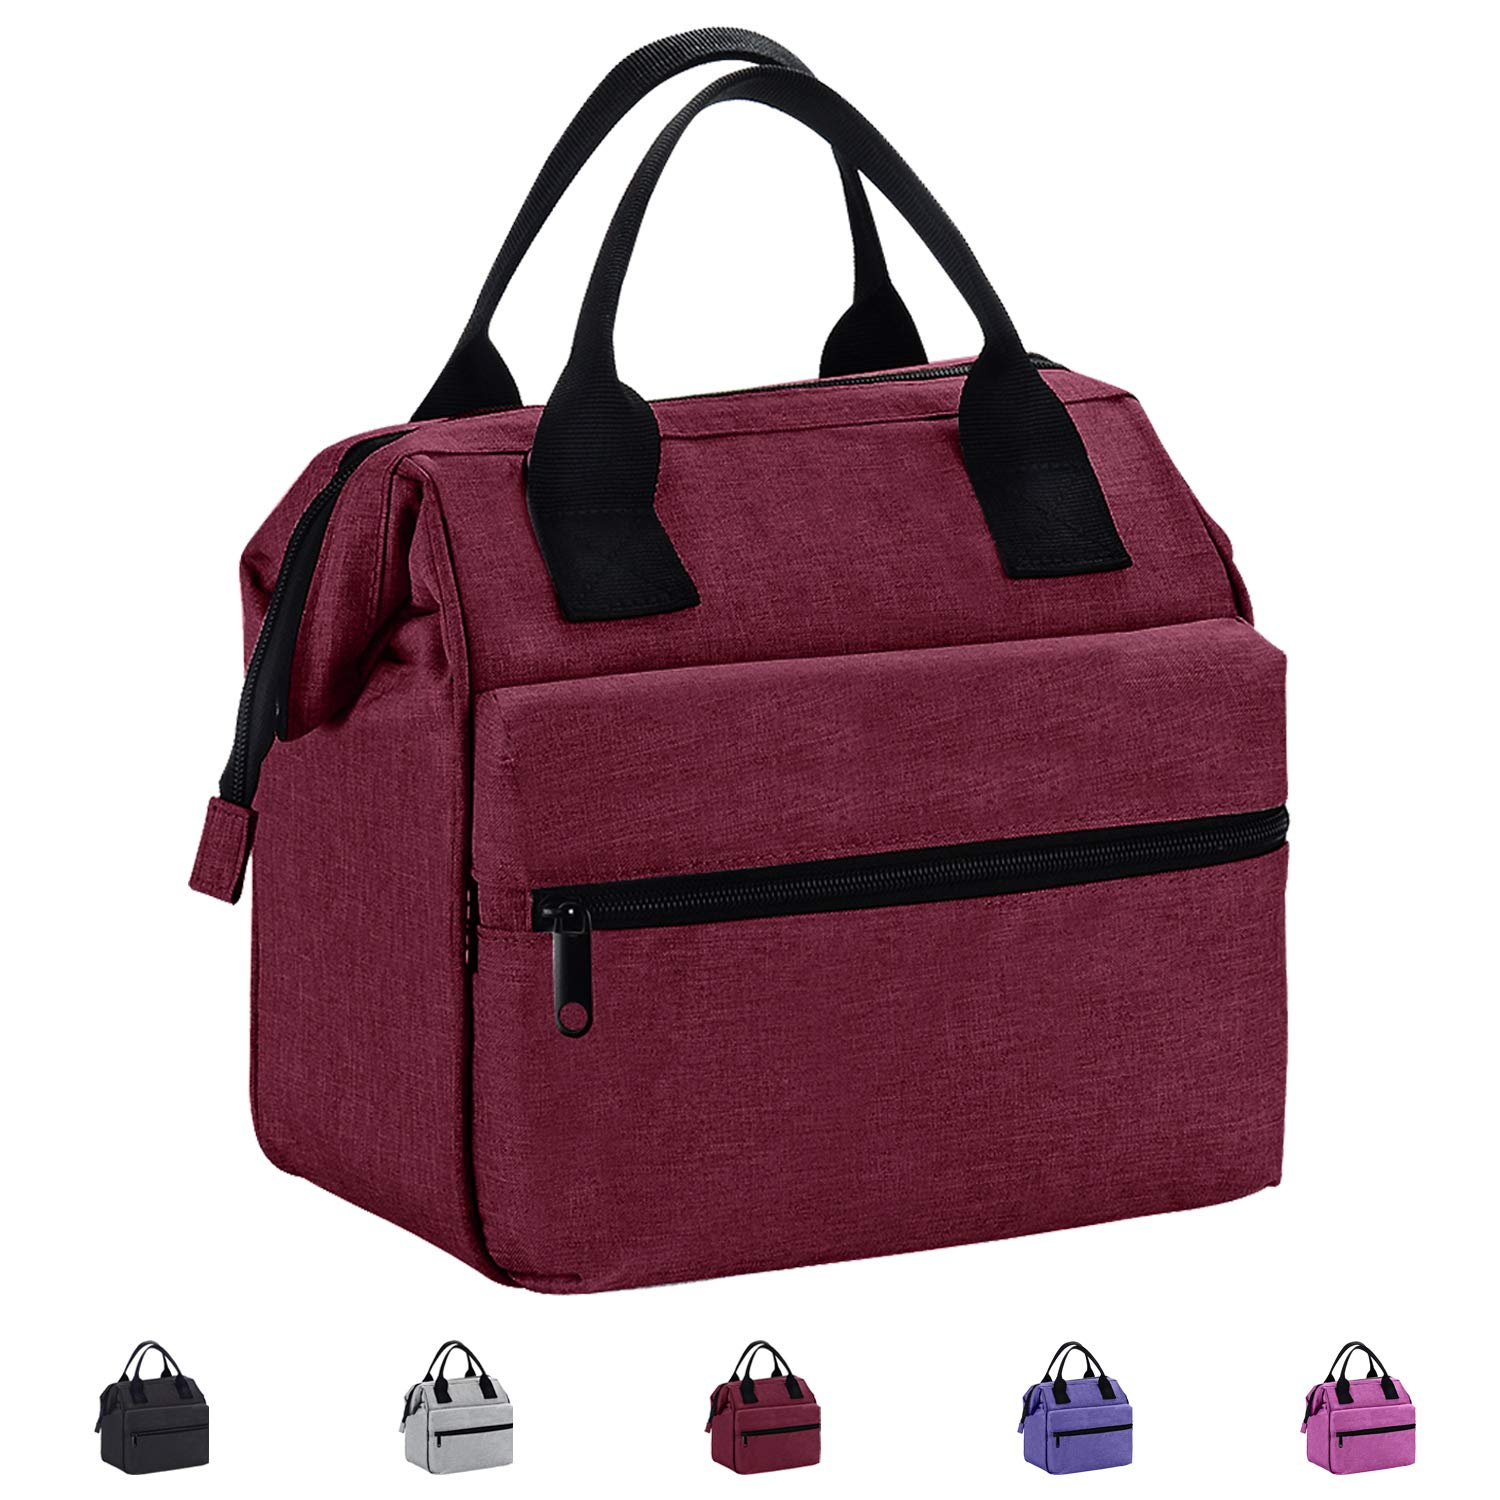 Srise Lunch Box Insulated Lunch Bag For Men &Women Meal Prep Lunch Tote Boxes For Kids & Adults(Wine Red) by Srise